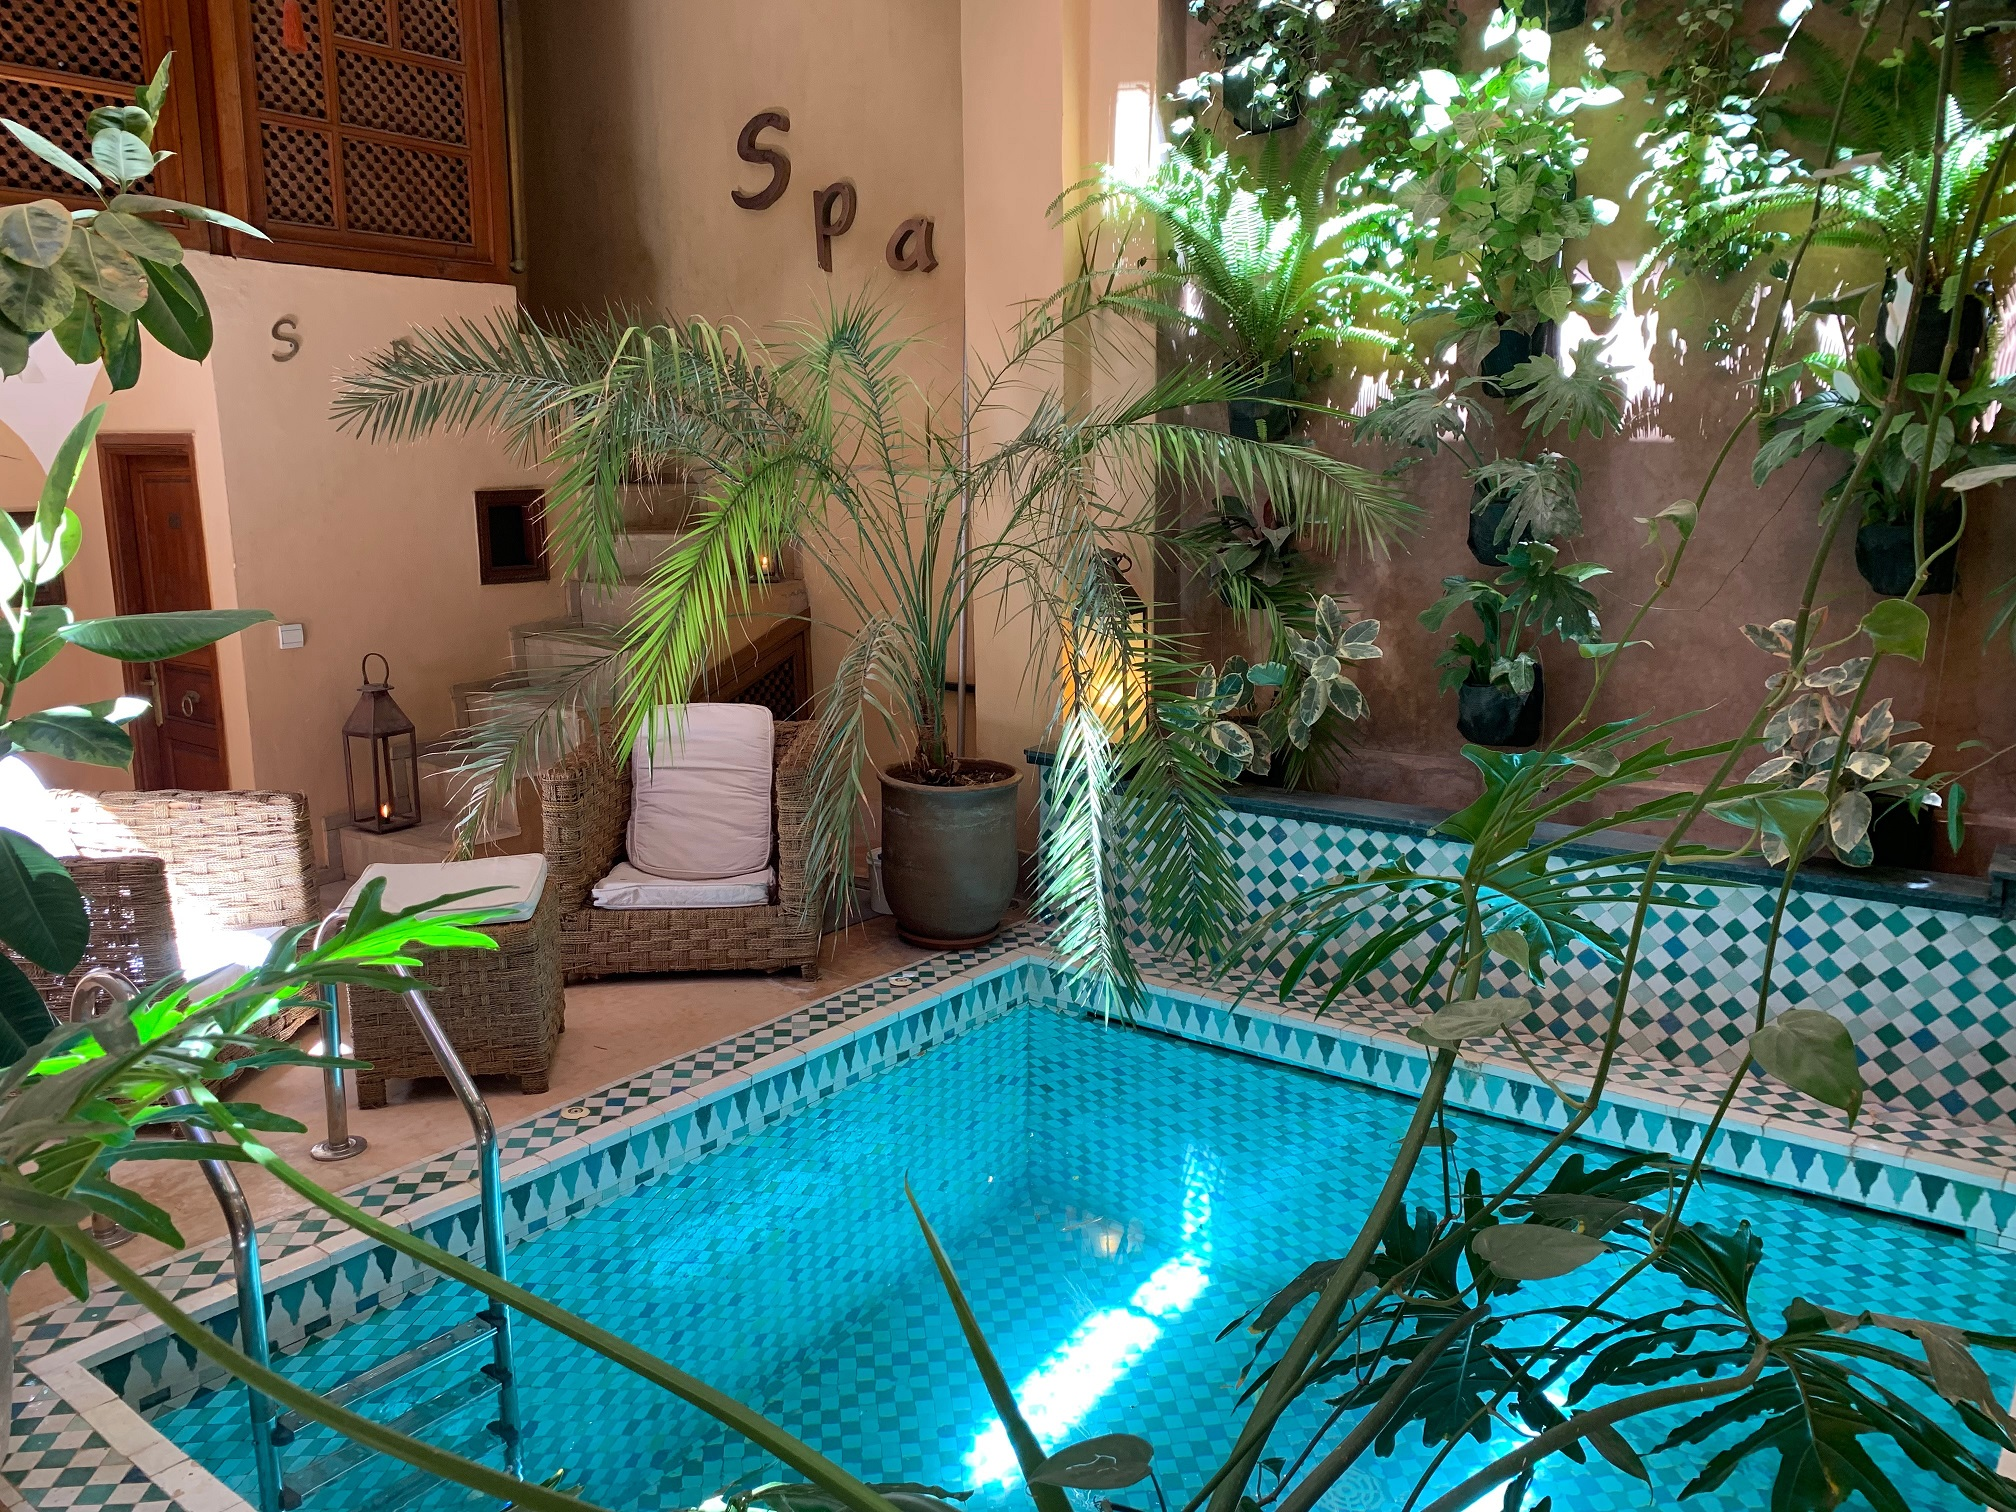 Spa & Riad Marrakech Al Ksar